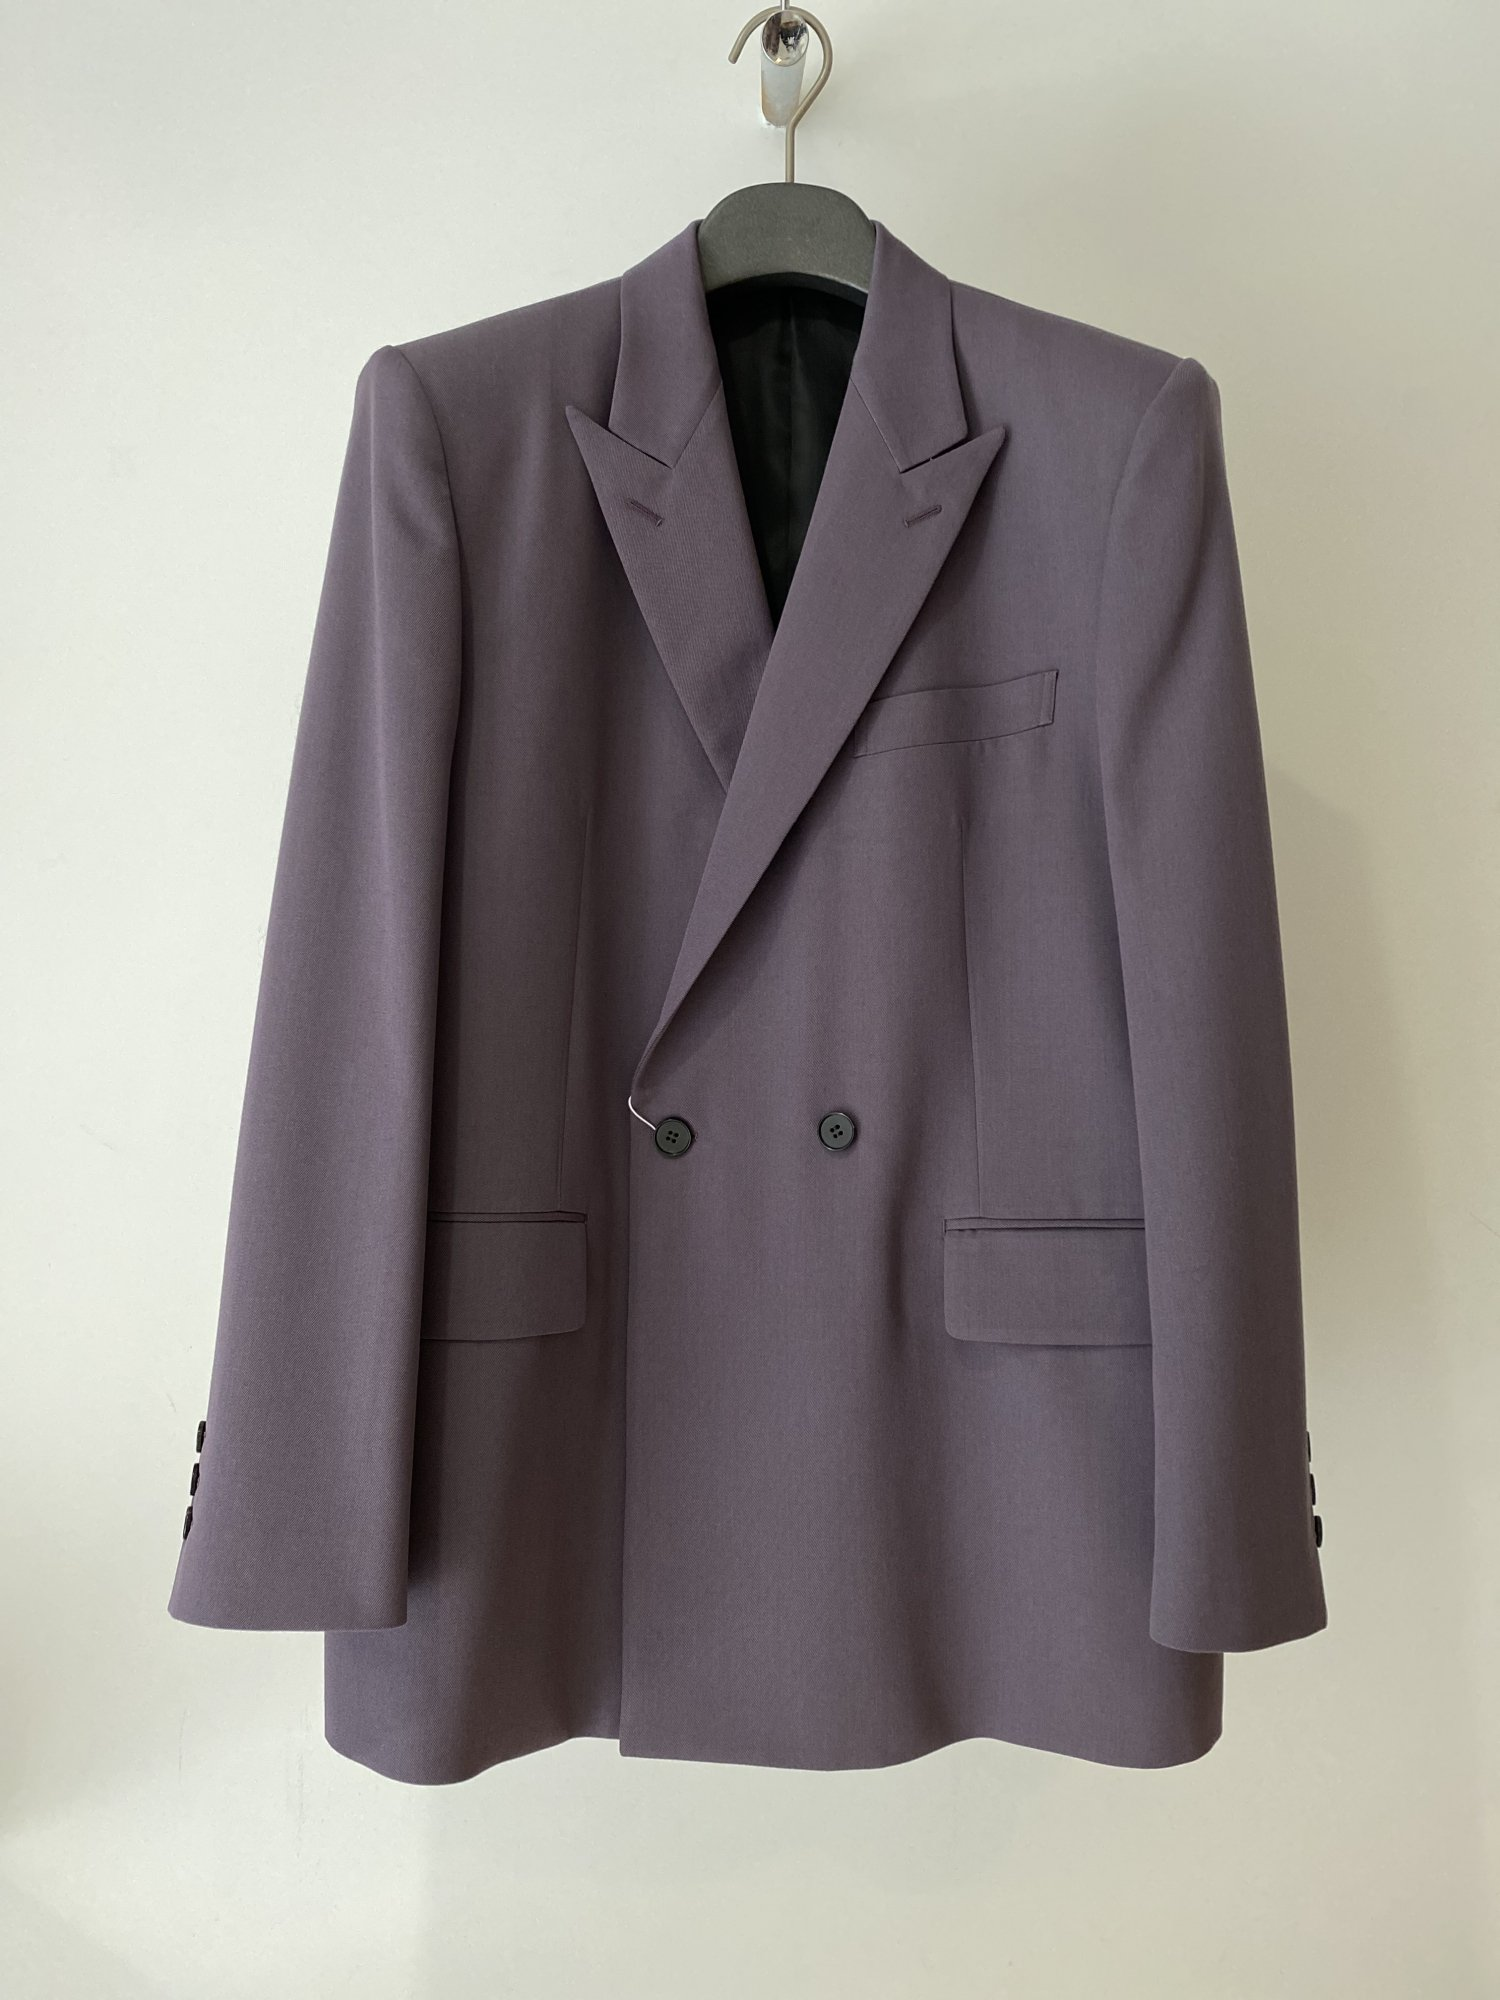 LITTLEBIG<br />2B Double Breasted Jacket  & Tucked Tapered Trousers  SET / Purple<img class='new_mark_img2' src='https://img.shop-pro.jp/img/new/icons14.gif' style='border:none;display:inline;margin:0px;padding:0px;width:auto;' />